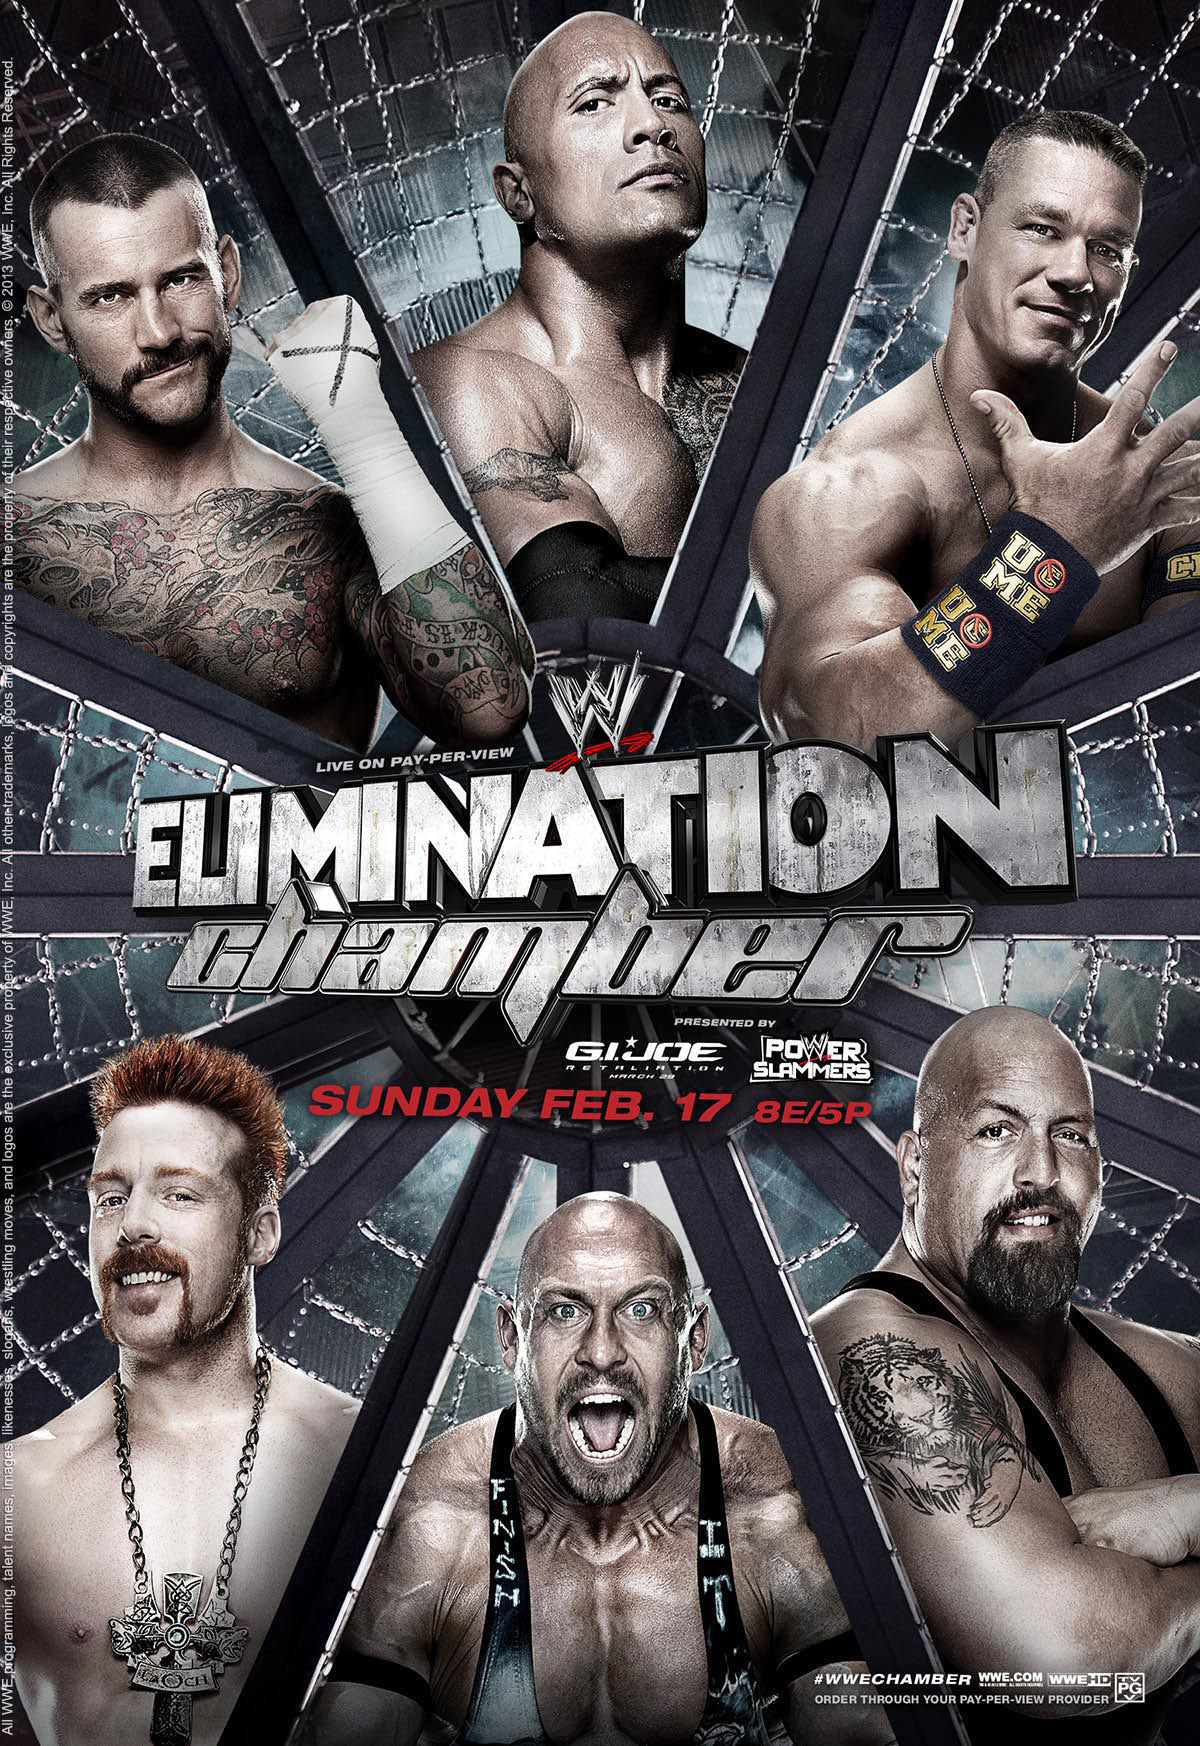 WWE Elimination Chamber 2013 Official Poster by windows8osx